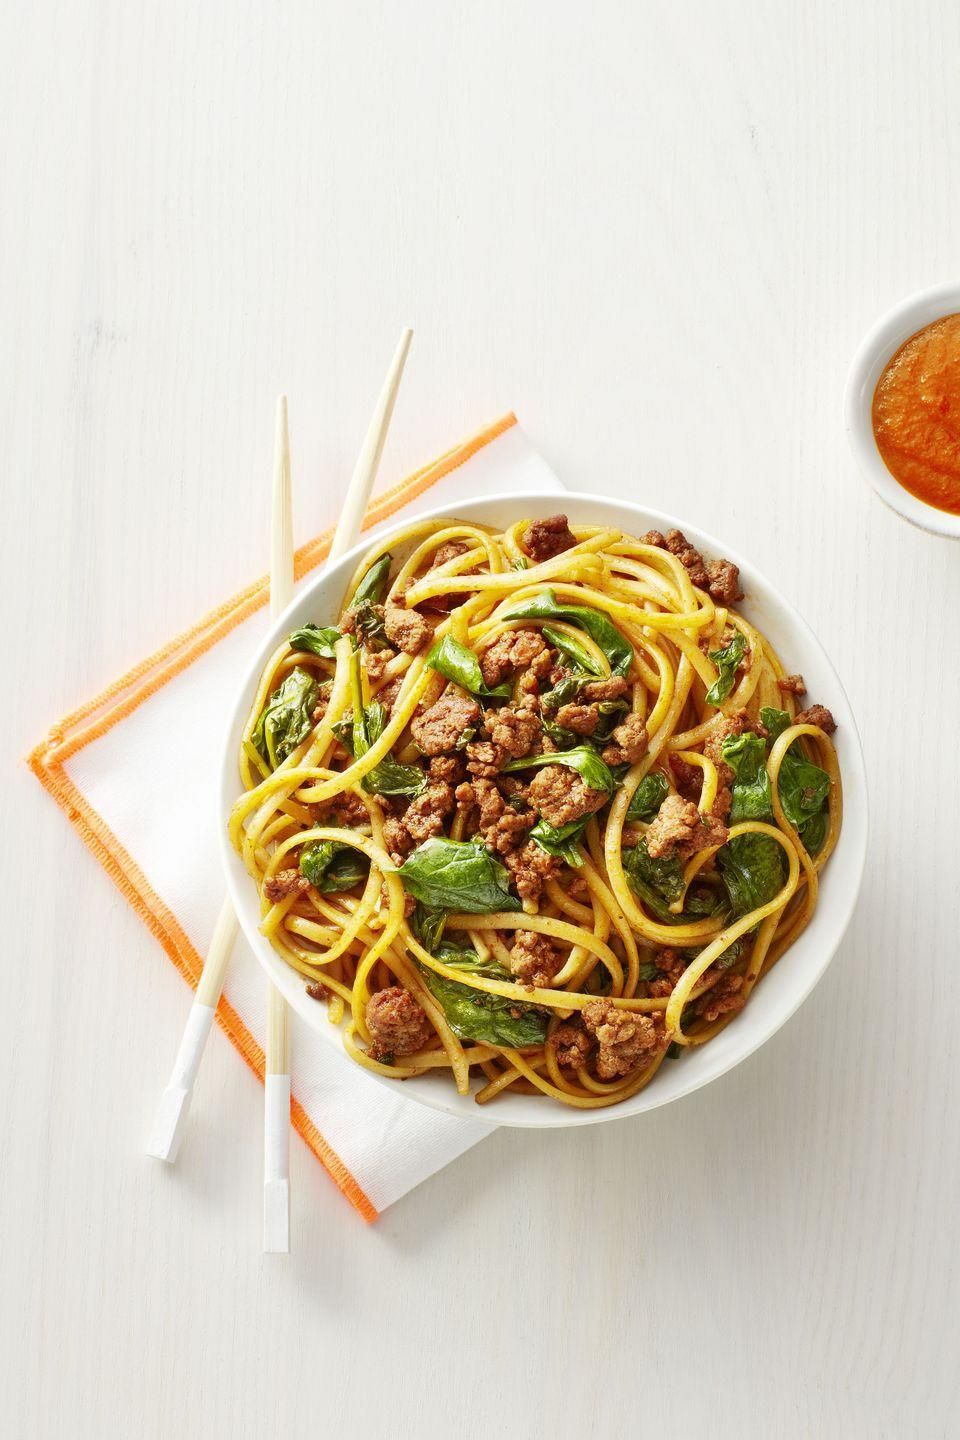 "<p>Standard spaghetti and meat sauce is always a crowd-pleaser, but ... snooze. This savory bowl of goodness is way more exciting and just as easy to throw together.</p><p><em><a href=""https://www.goodhousekeeping.com/food-recipes/a1439/hot-n-spicy-pork-noodles-recipe-ghk0215/?visibilityoverride"" rel=""nofollow noopener"" target=""_blank"" data-ylk=""slk:Get the recipe for Hot 'n' Spicy Pork Noodles »"" class=""link rapid-noclick-resp"">Get the recipe for Hot 'n' Spicy Pork Noodles »</a></em></p>"